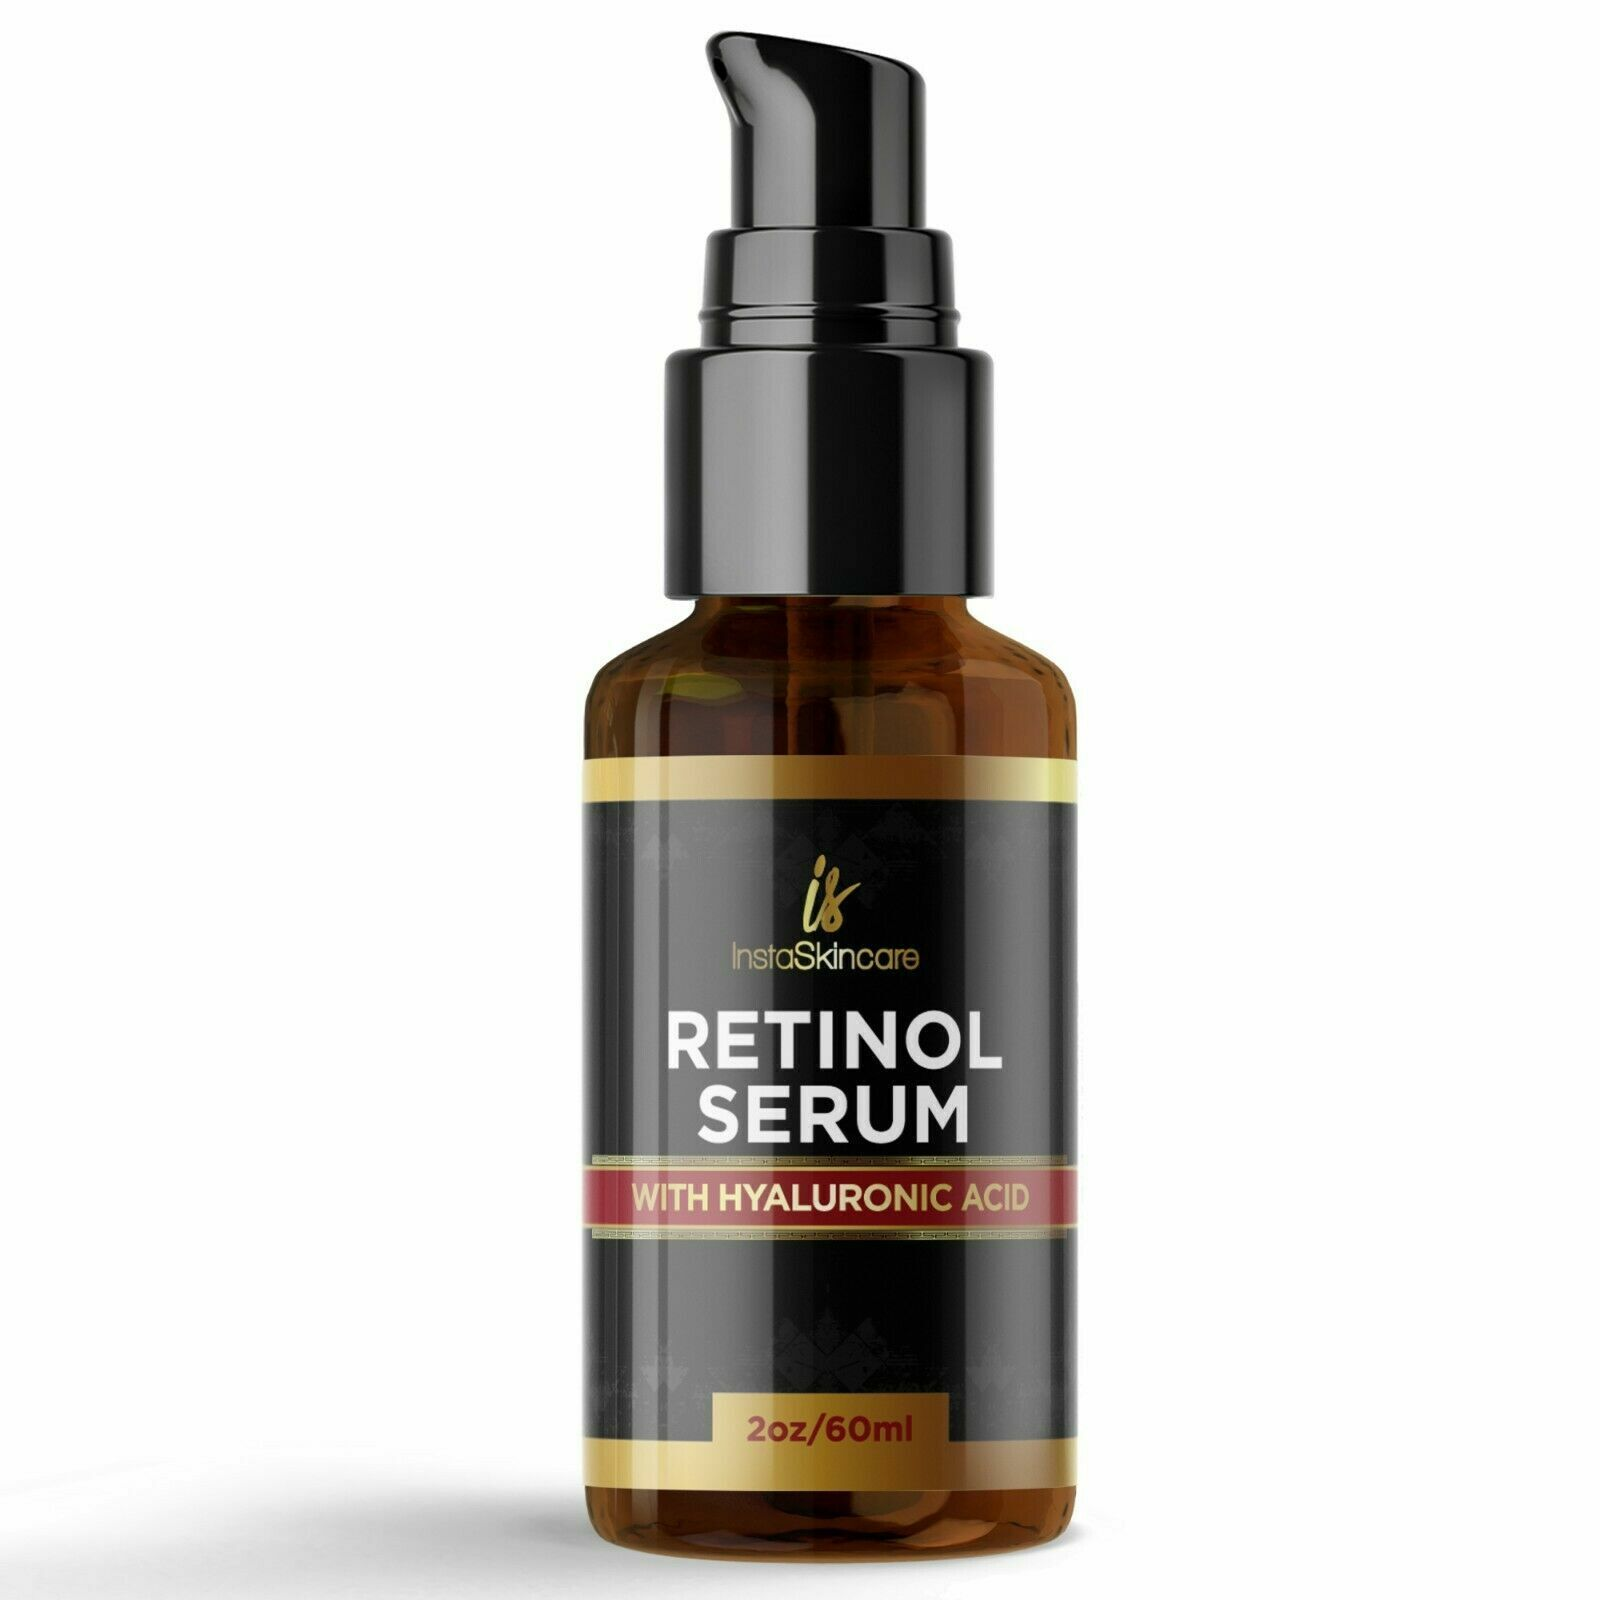 ▶Retinol Serum For Face with Hyaluronic Acid Vitamin A,E,